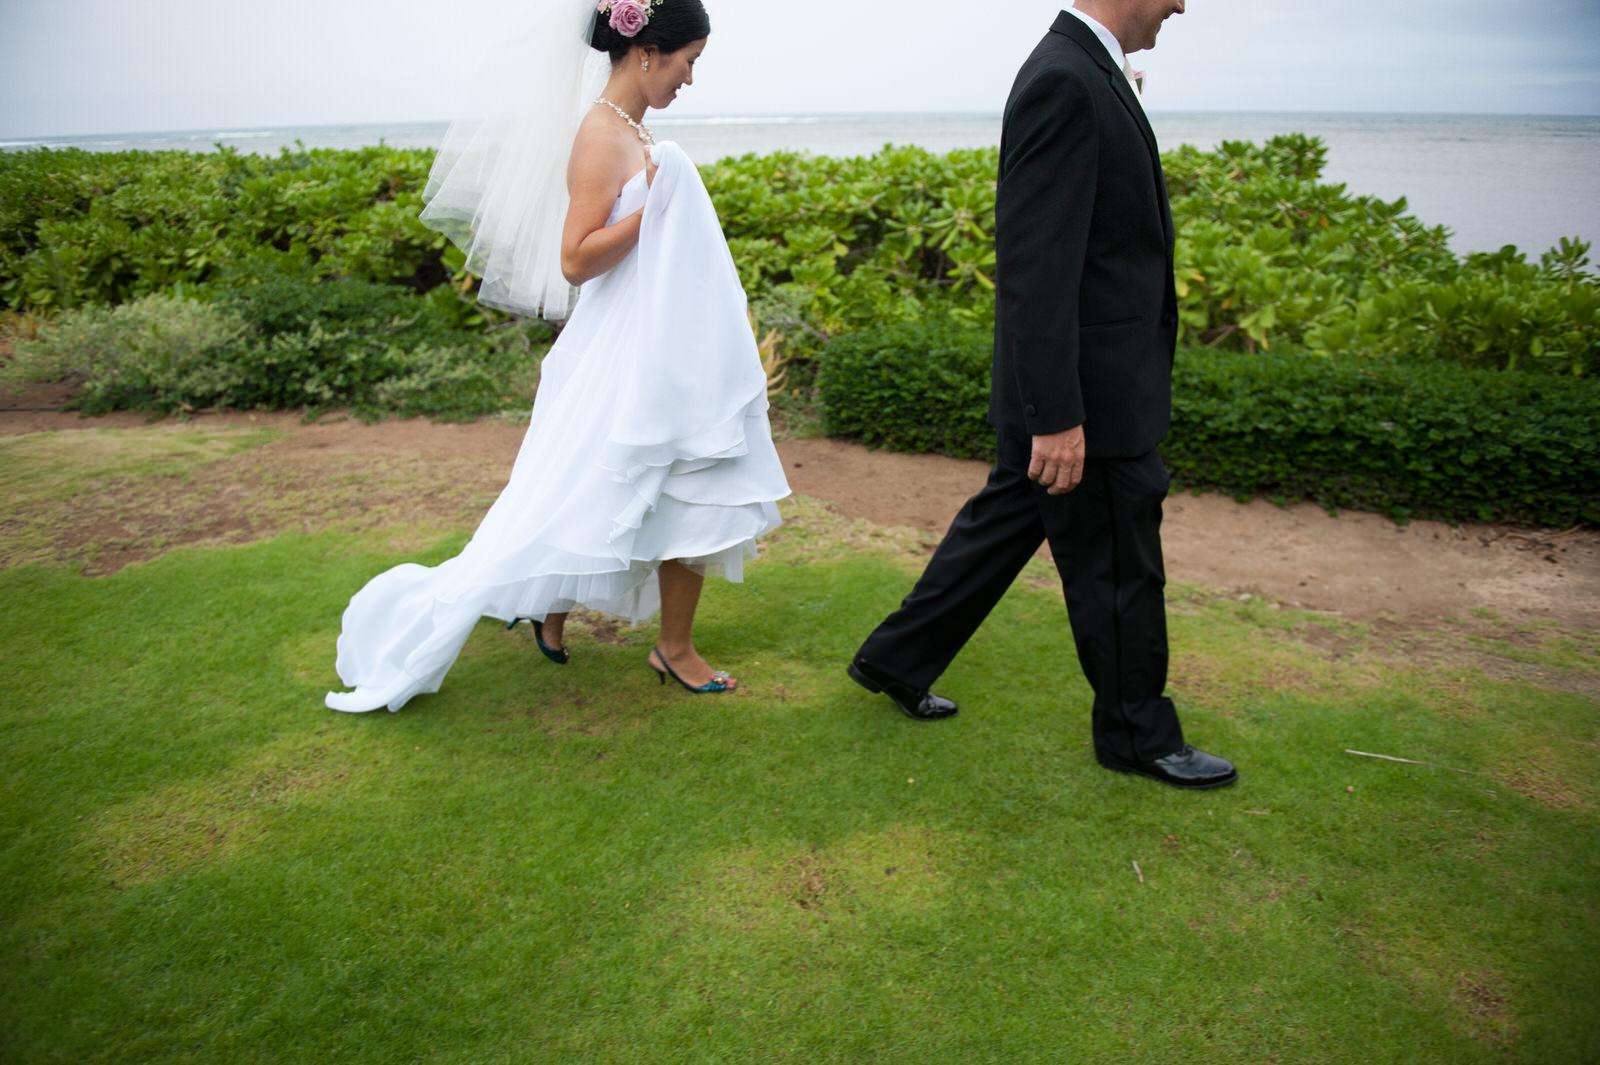 Bridal couple walking together